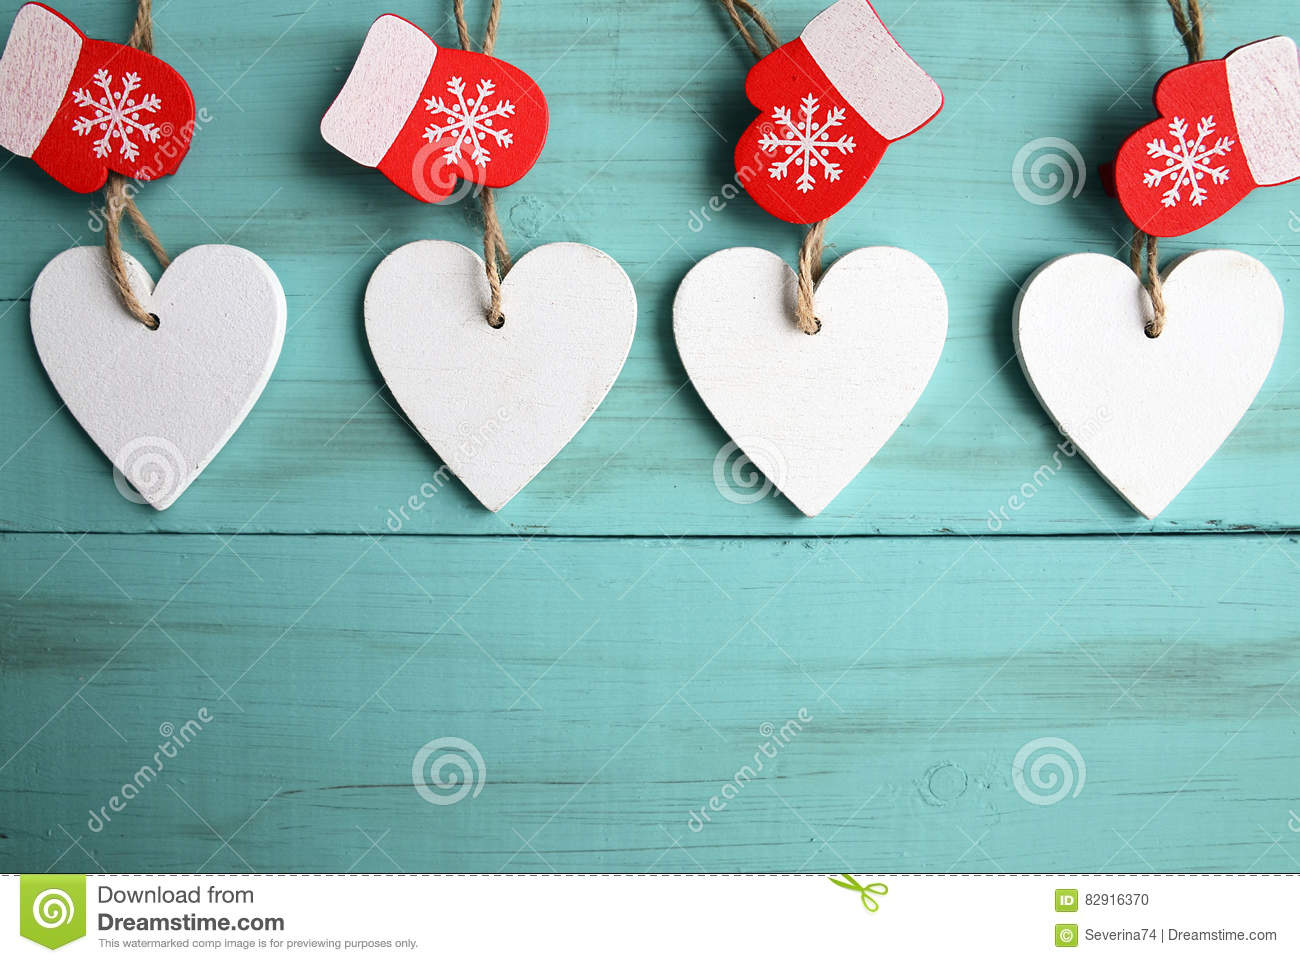 Decorative white wooden Christmas hearts and red mittens on blue wooden background with copy space.